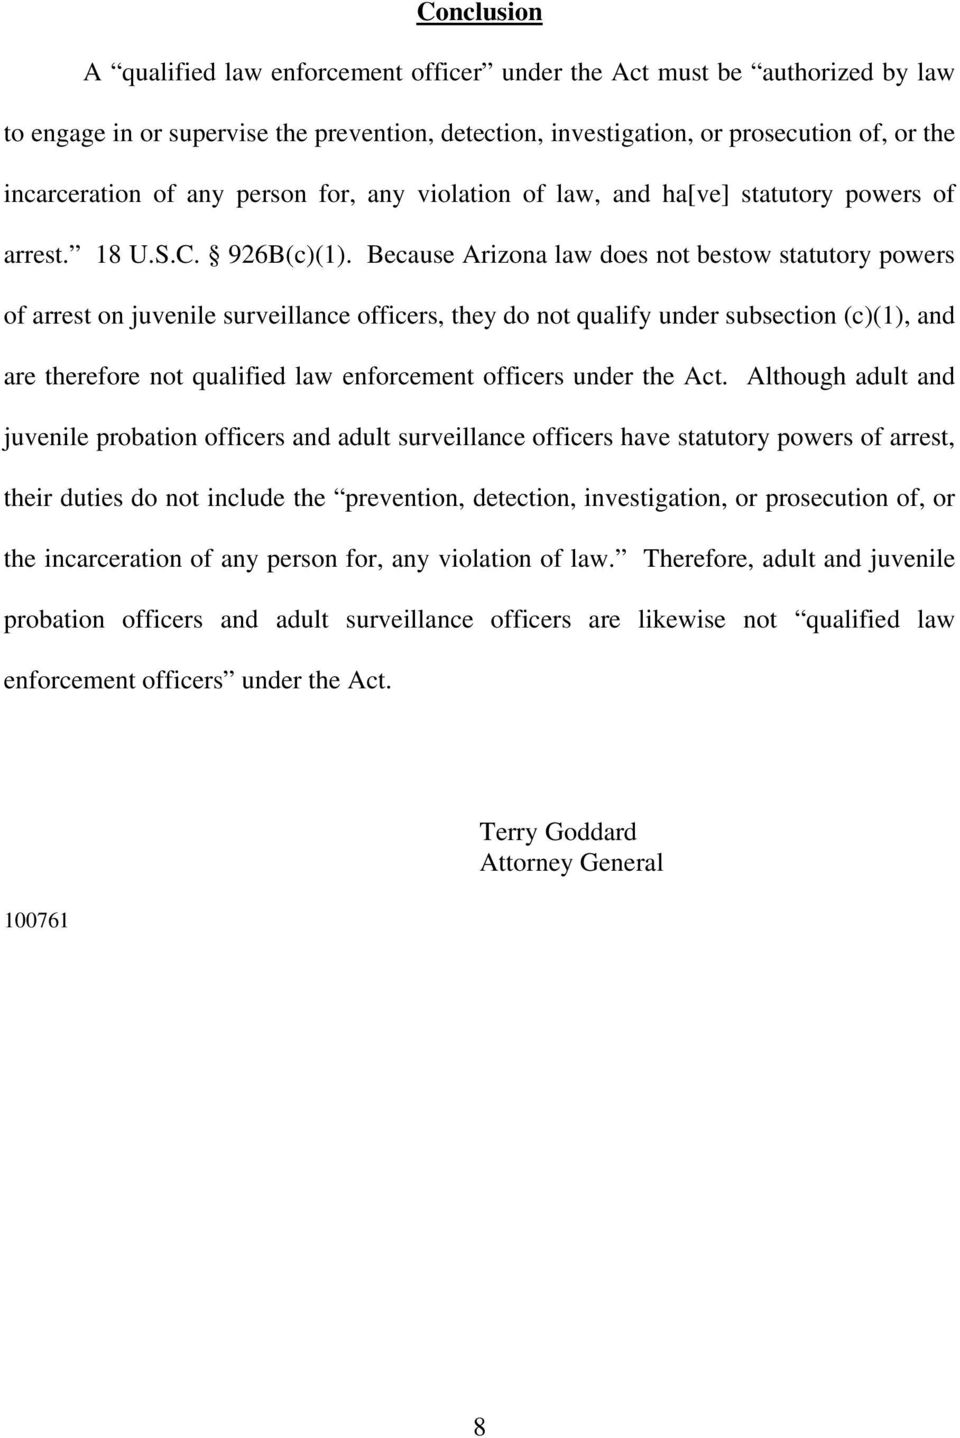 Because Arizona law does not bestow statutory powers of arrest on juvenile surveillance officers, they do not qualify under subsection (c)(1), and are therefore not qualified law enforcement officers